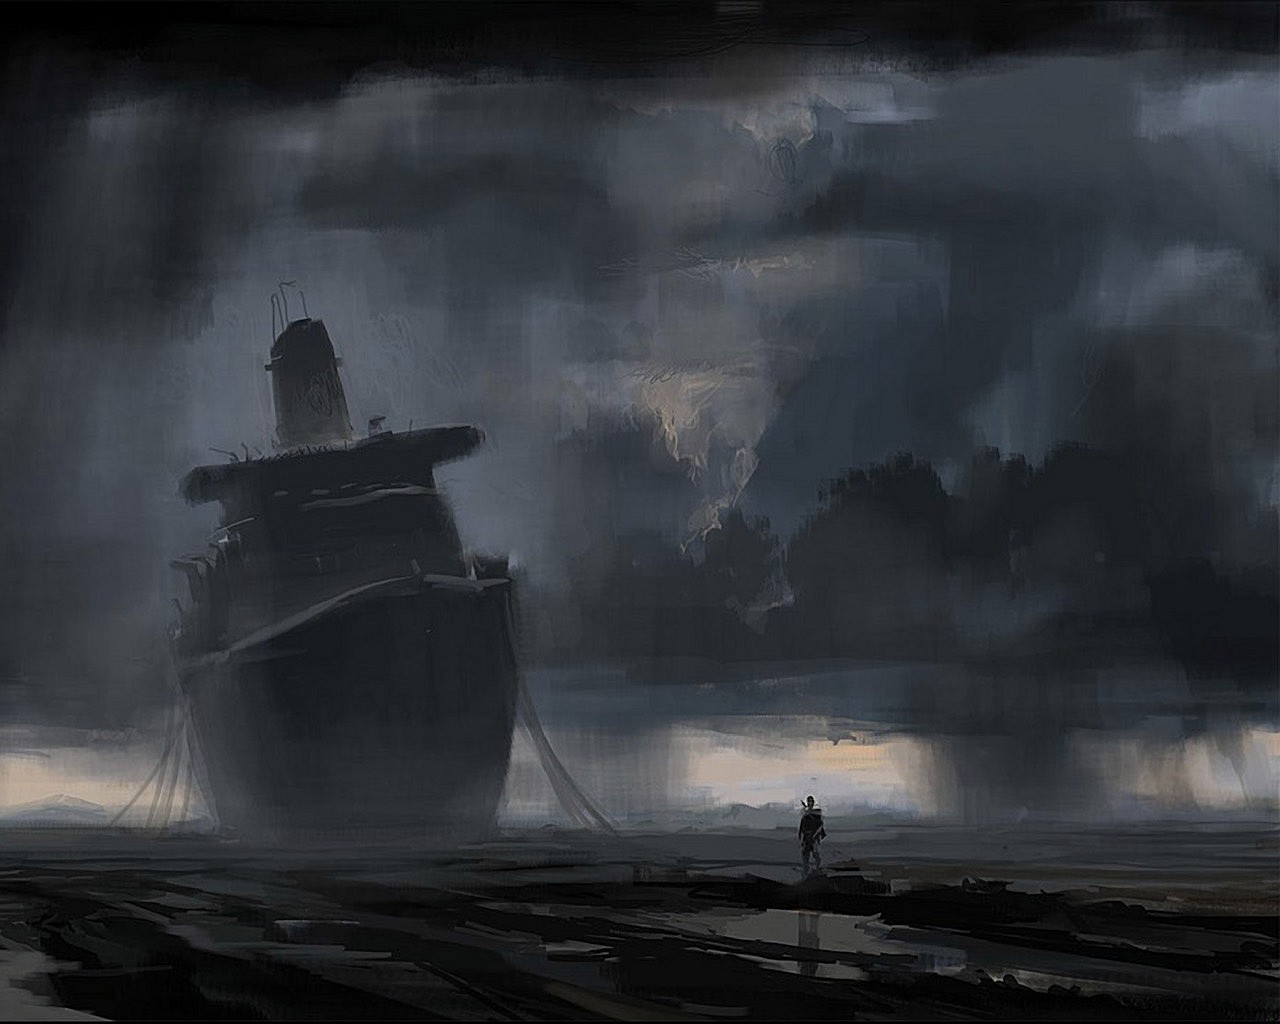 New 3d Wallpaper For Mobile Phone Clouds Rain Shipwreck Wallpapers Hd Desktop And Mobile